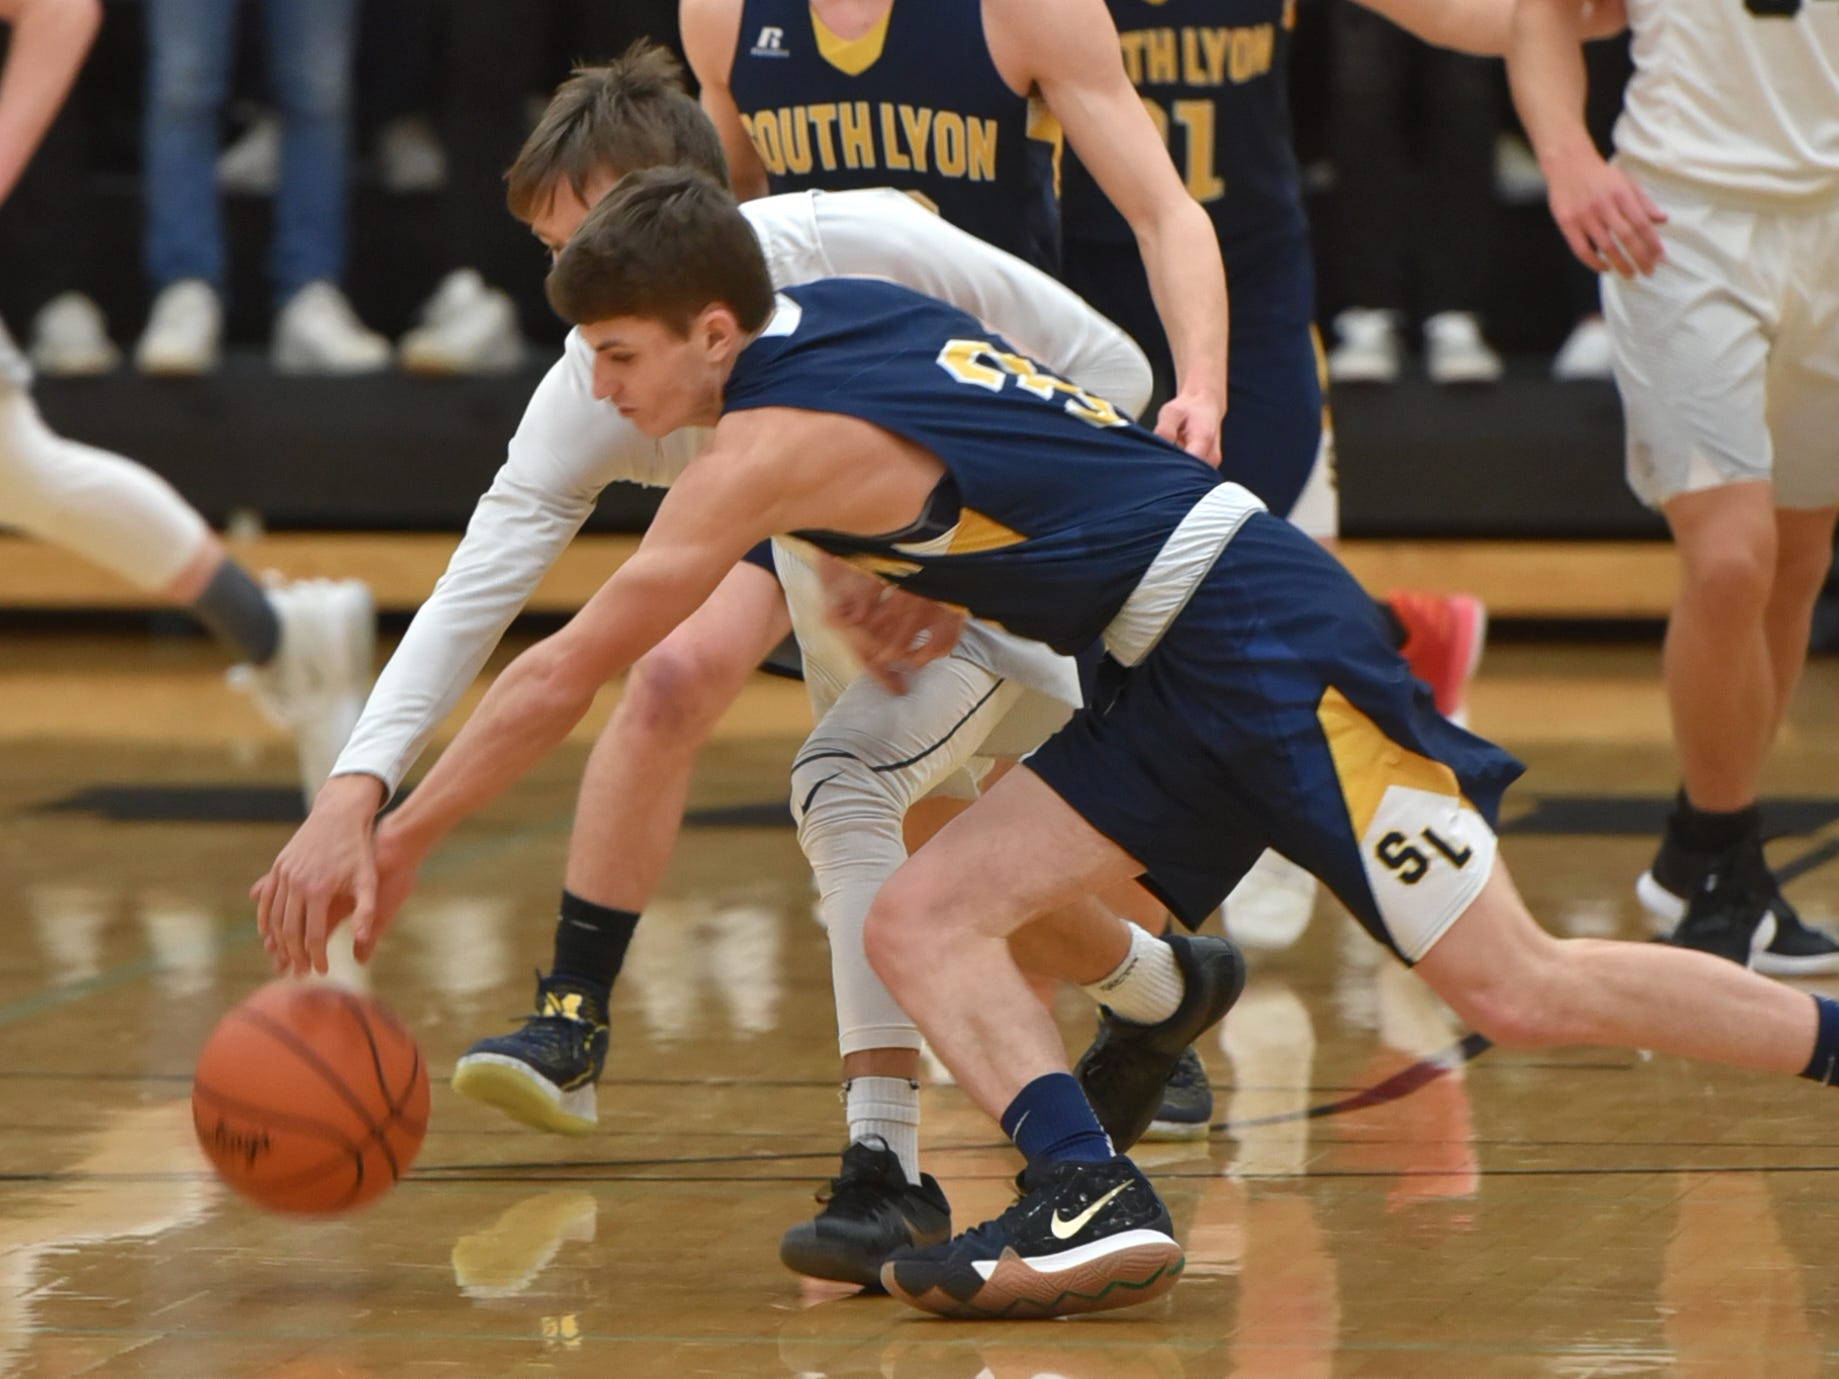 South Lyon East Cougar Sean Clary, rear, and South Lyon's Matthew Sherry go after a loose ball during the teams' Feb. 8 game.